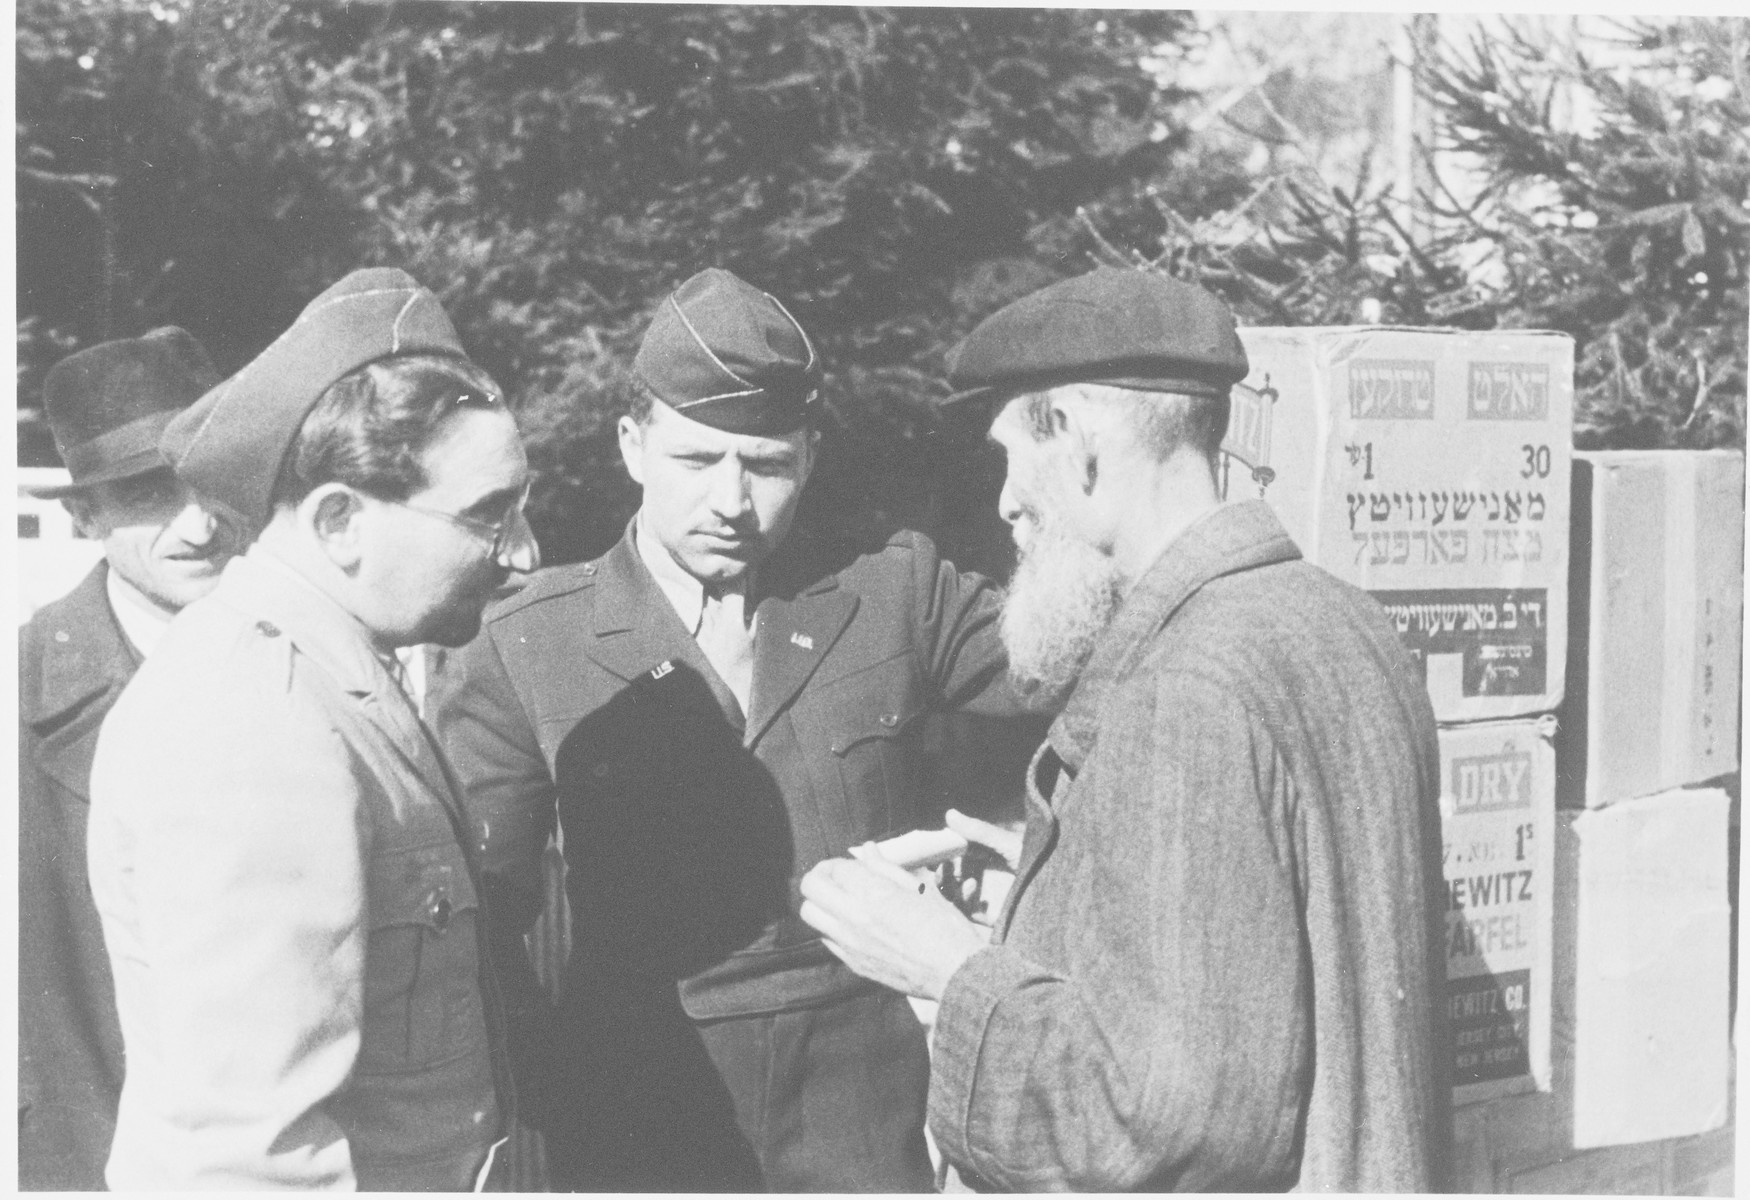 Rabbi Nathan Baruch and Rabbi Aviezer Burstein distribute Passover matza in an unidentified displaced persons' camp.